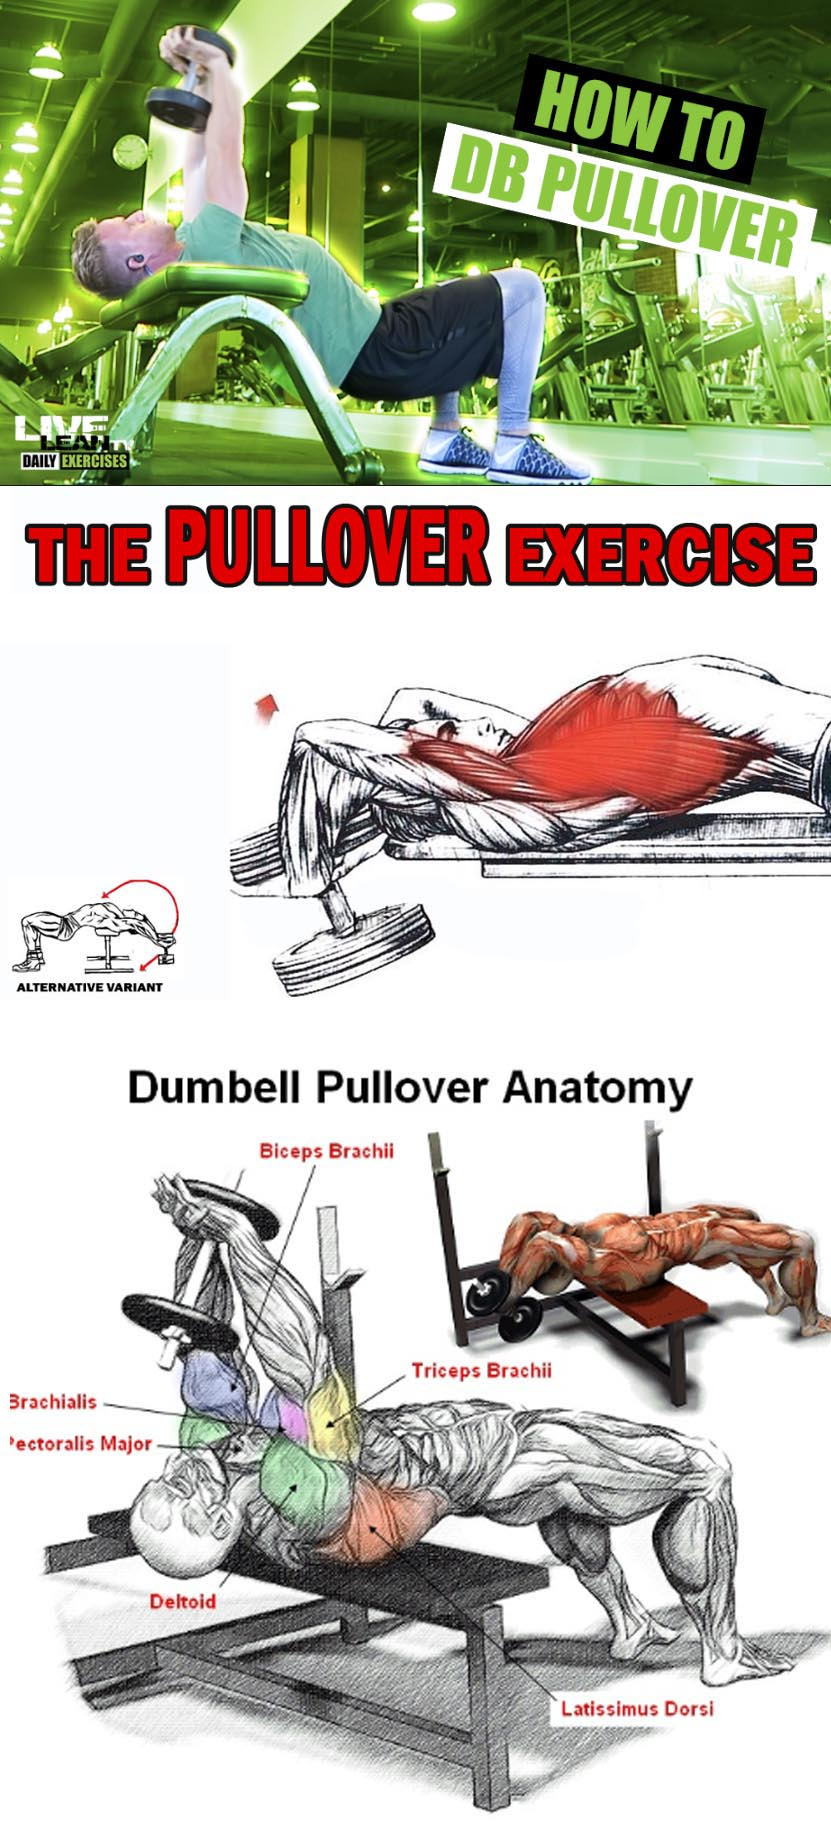 How to Dumbbell Pullover